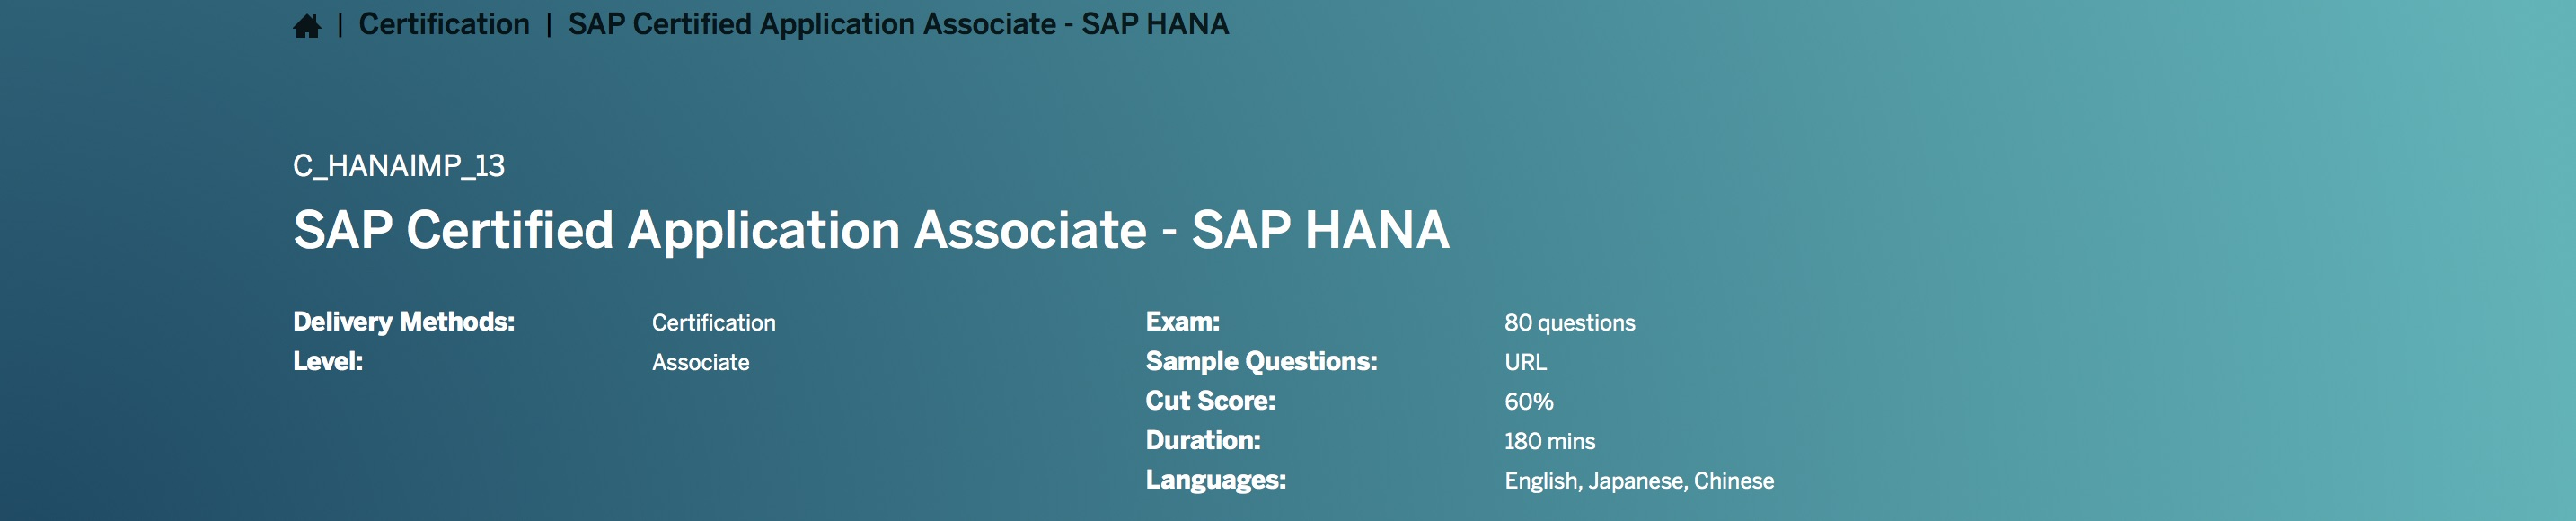 Sap certified application associate chanaimp13 by the sap hana as a rule sap certifications are valid for a limited time period see the faq baditri Image collections